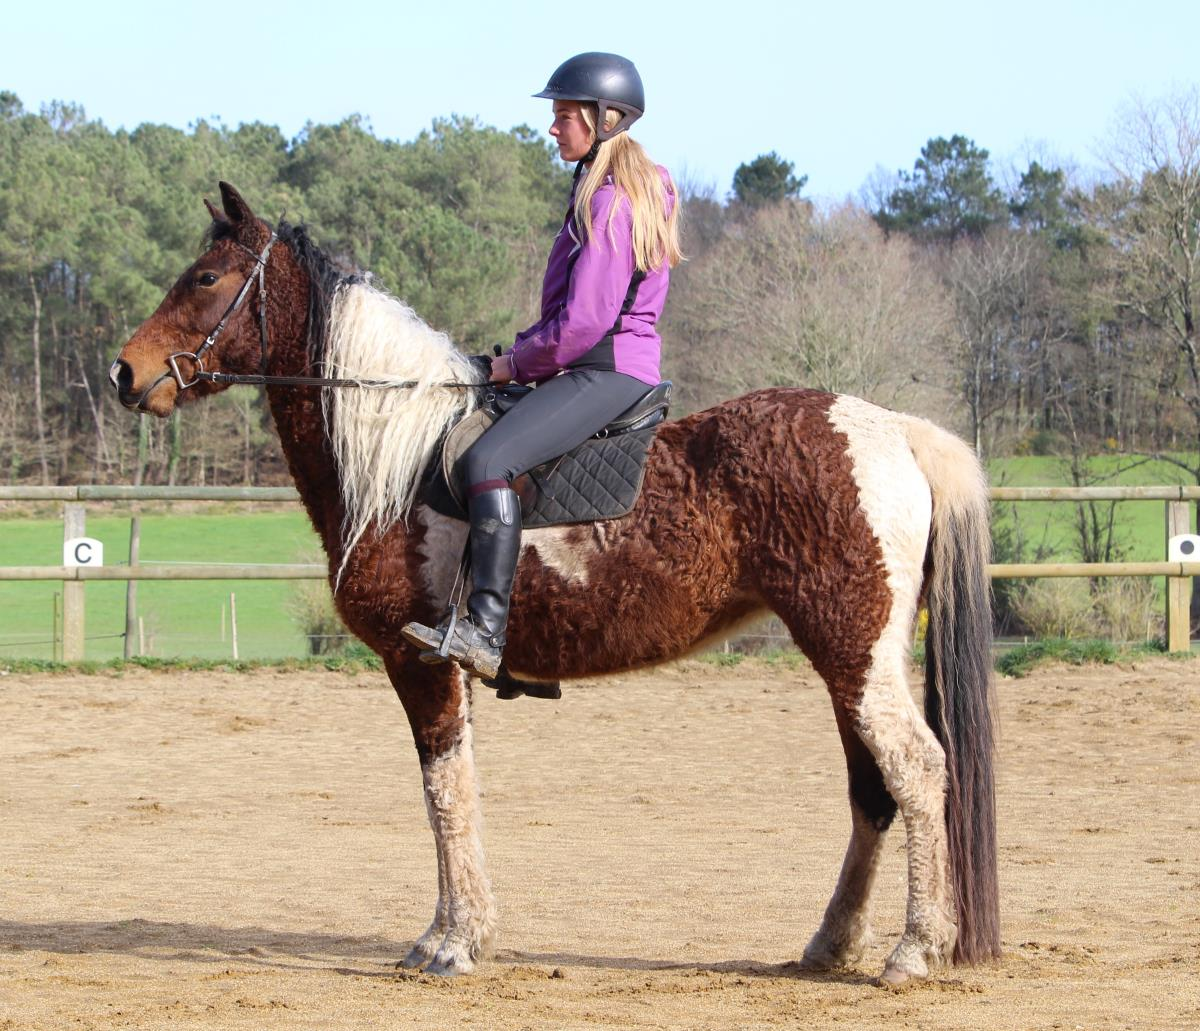 CURLY HORSE MARE - Kaila smart of JAK